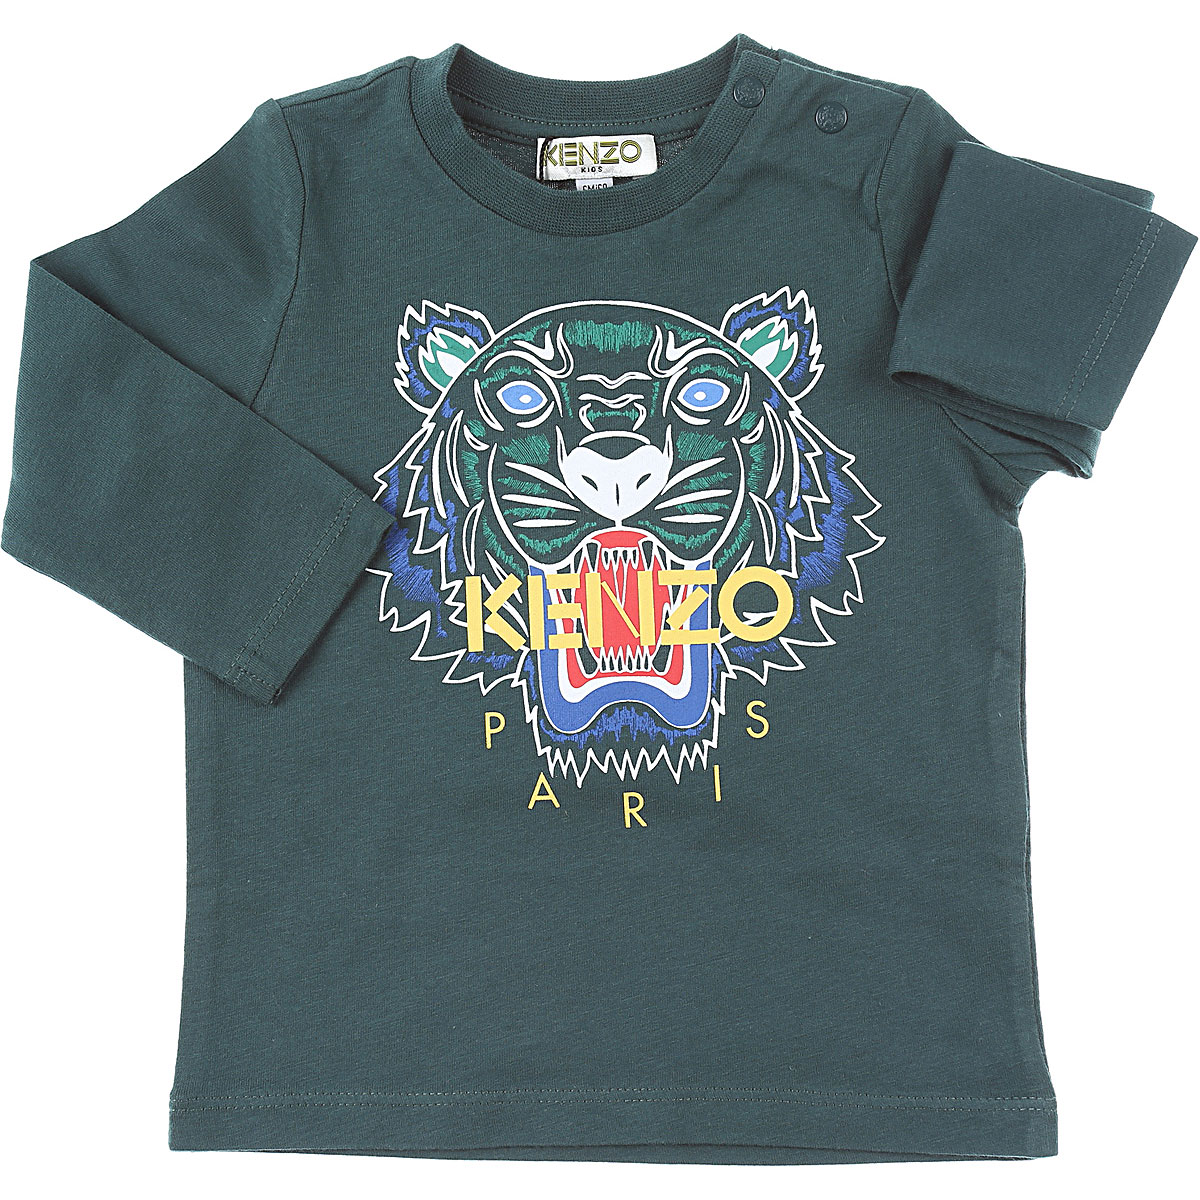 Kenzo Baby T-Shirt for Boys On Sale, Green, Cotton, 2019, 18M 9M